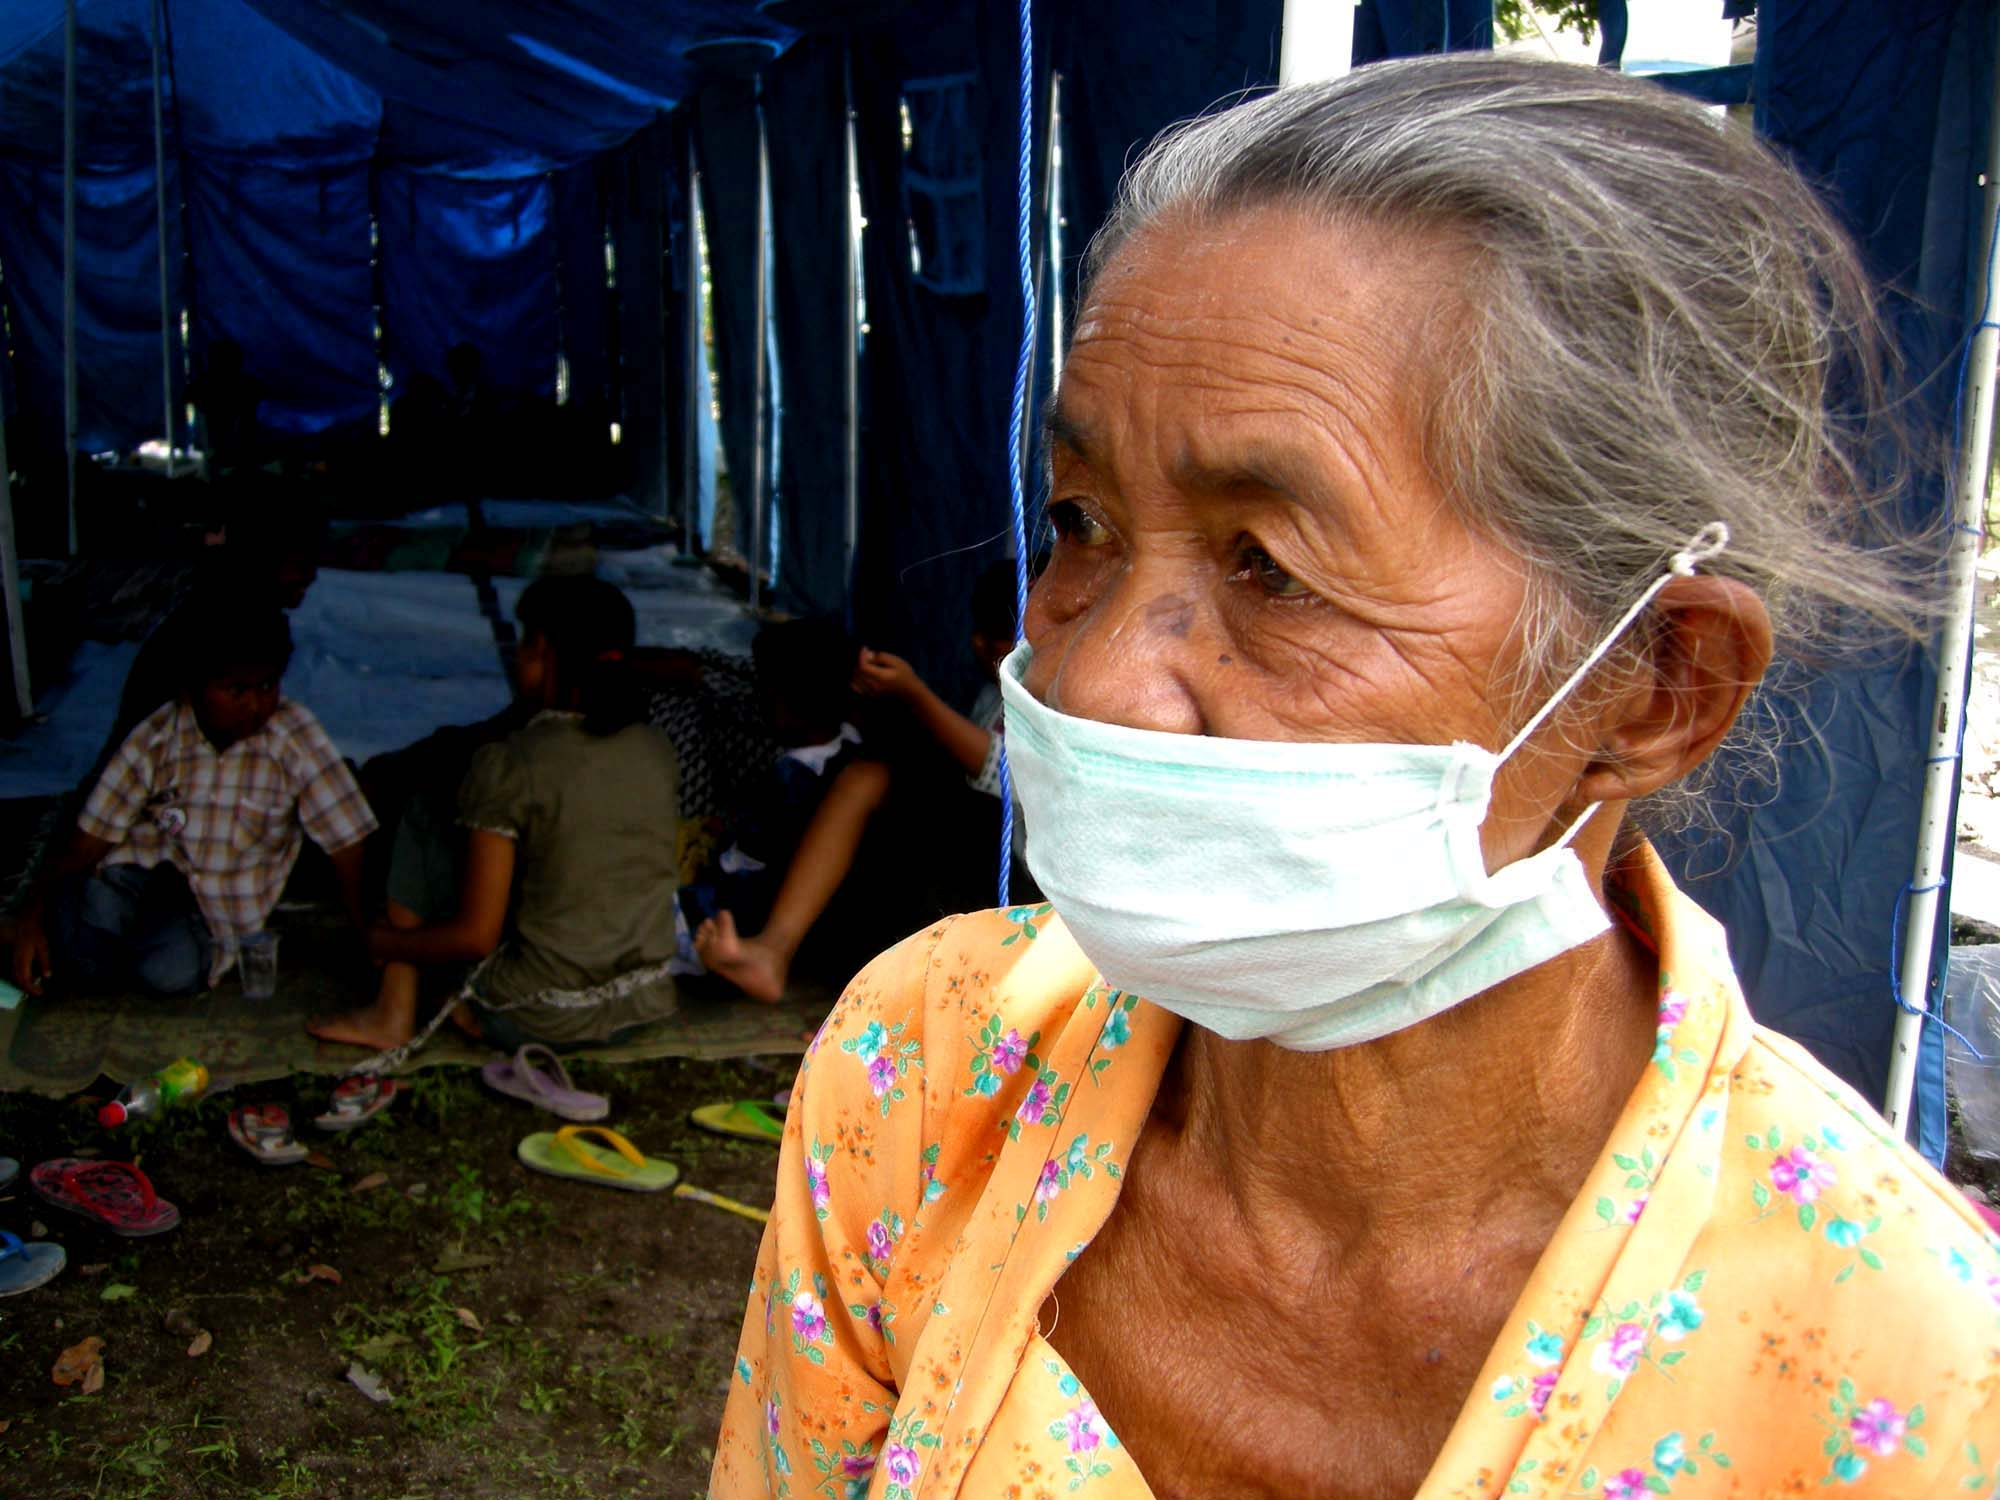 An elderly woman awaits assistance at an evacuation centre for those displaced by the Mount Merapi volcano in central Java. 27 October, 2010